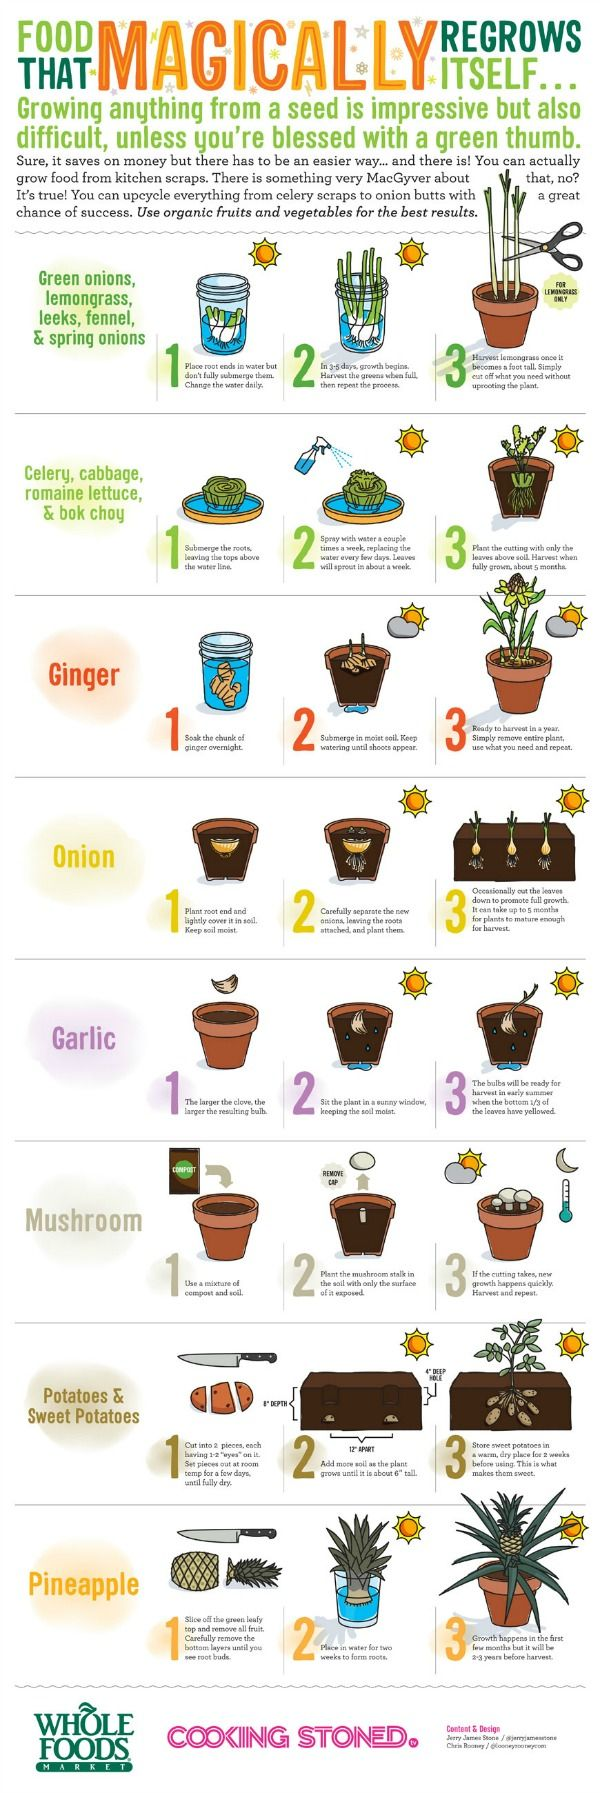 Here are the Foods that You Can Magically Regrow from Leftovers